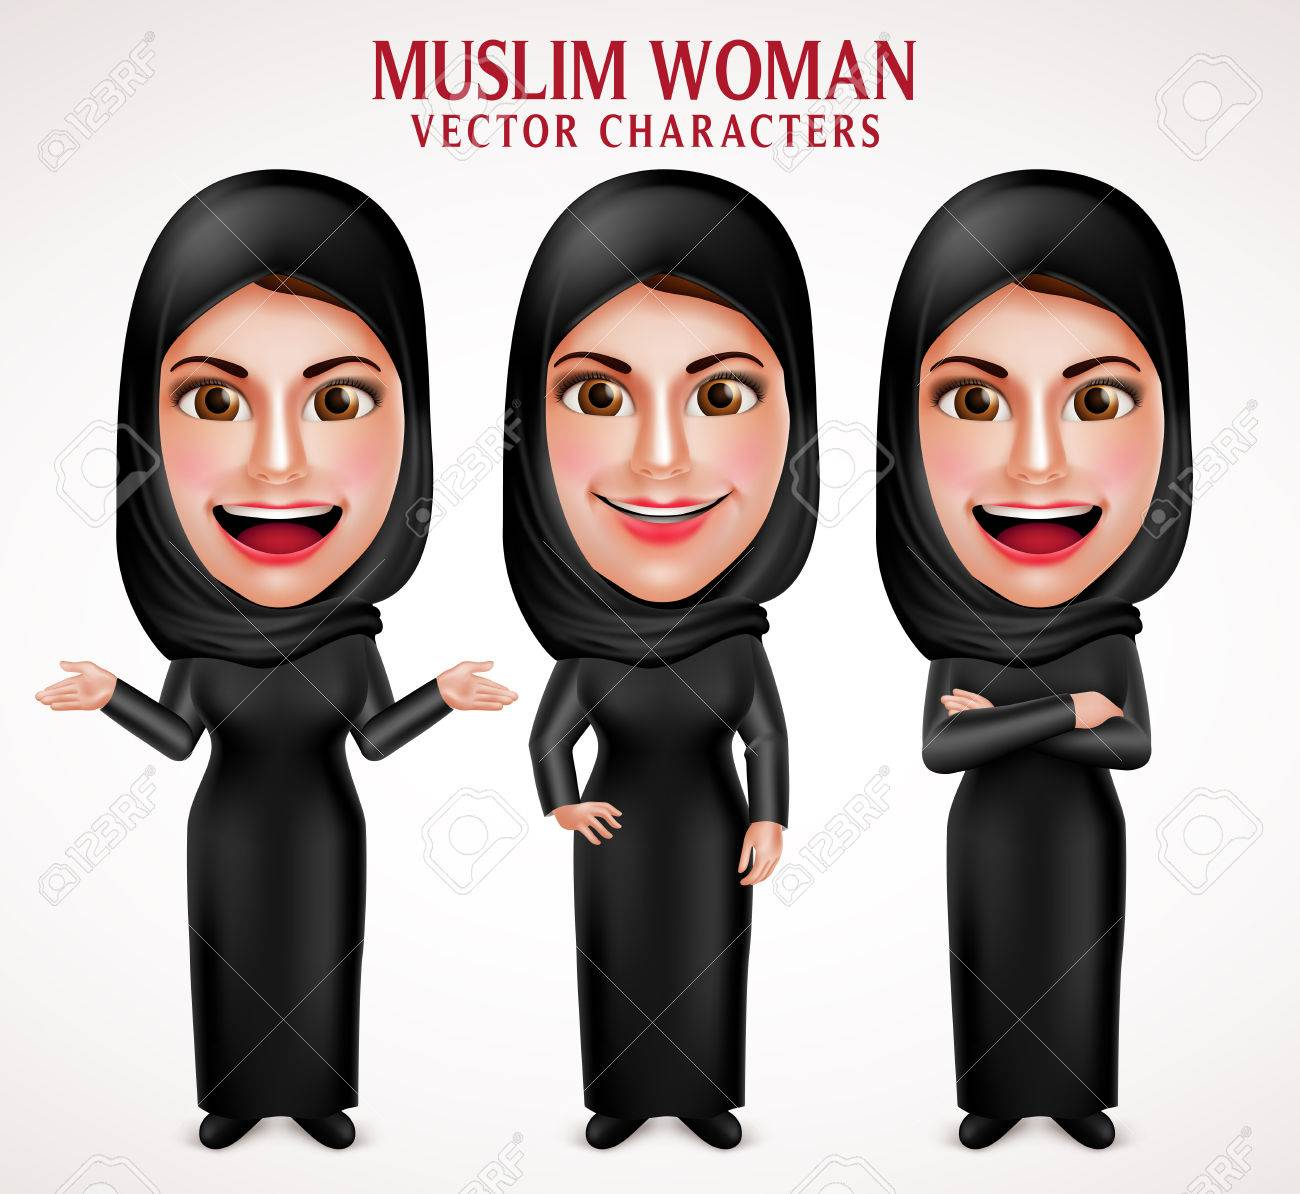 Muslim woman vector characters set wearing hijab black clothes with different pose and hand gestures in white background. Vector illustration. - 61269841